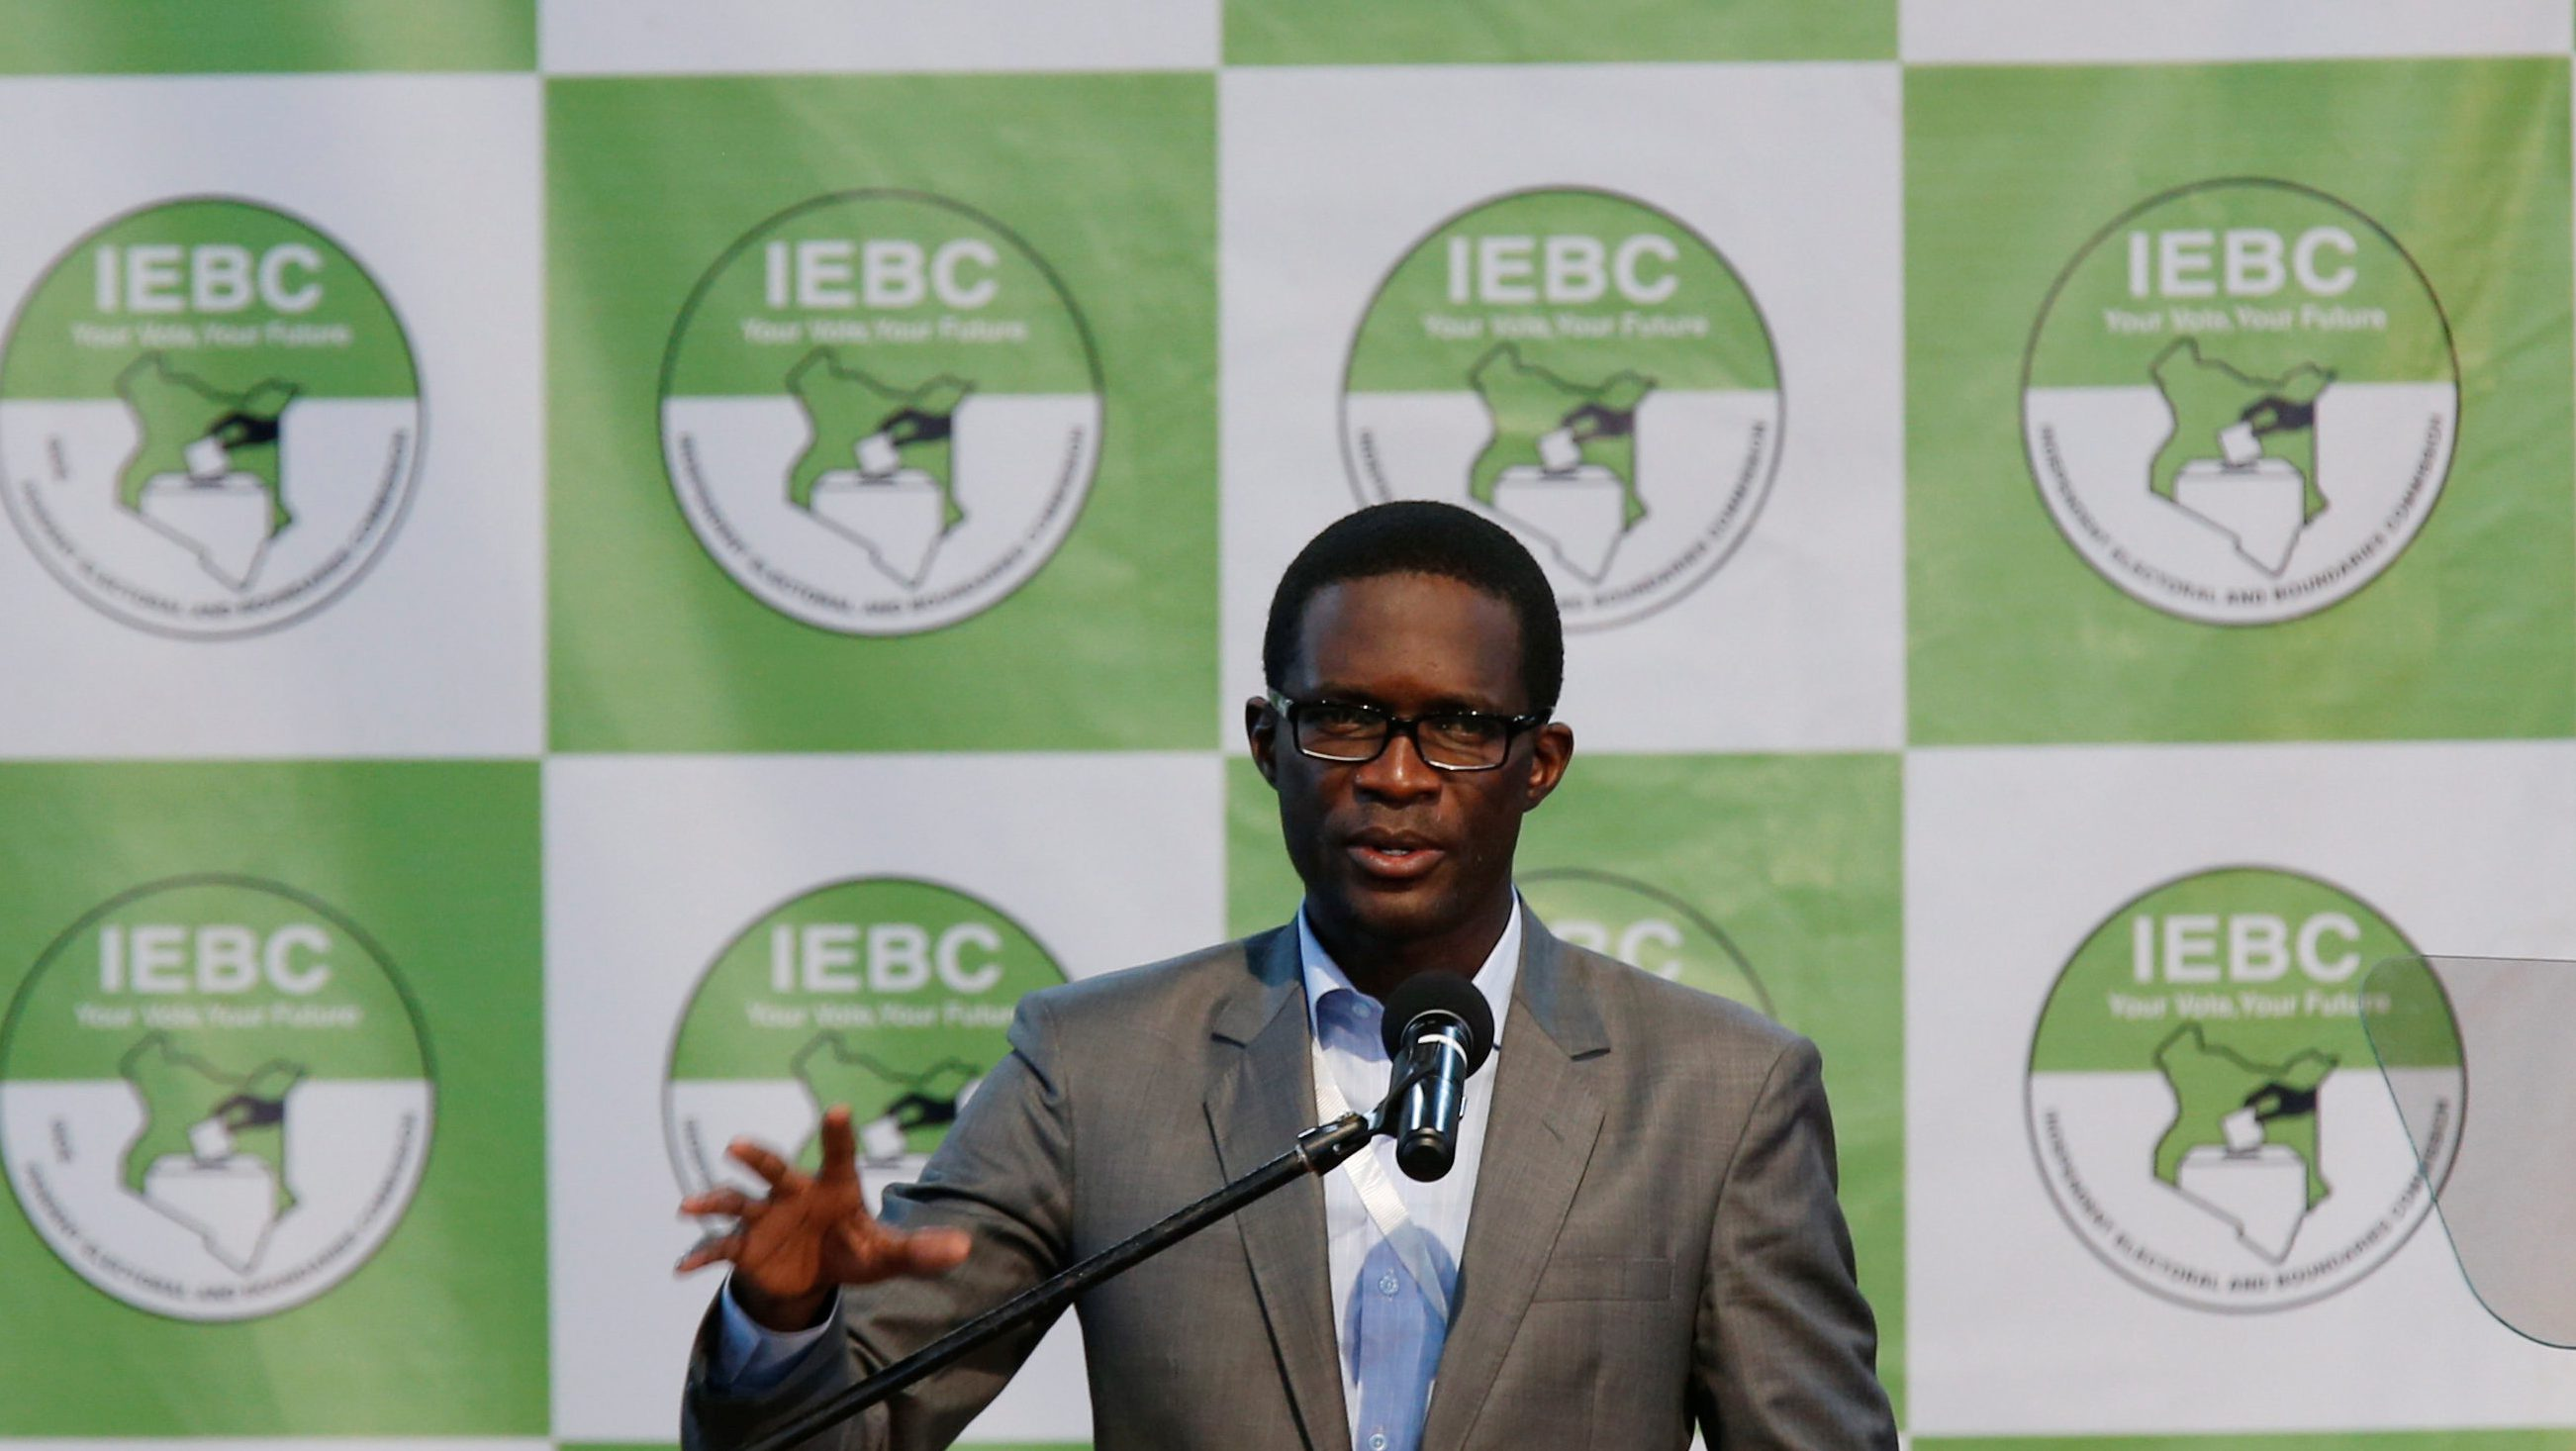 Chief Electoral Officer of Kenya's Independent Electoral and Boundaries Commission (IEBC) Ezra Chiloba speaks during a news conference ahead of the announcement of the winner of polls in Kenya's election at the Bomas of Kenya, in Nairobi,  Kenya August 11, 2017.